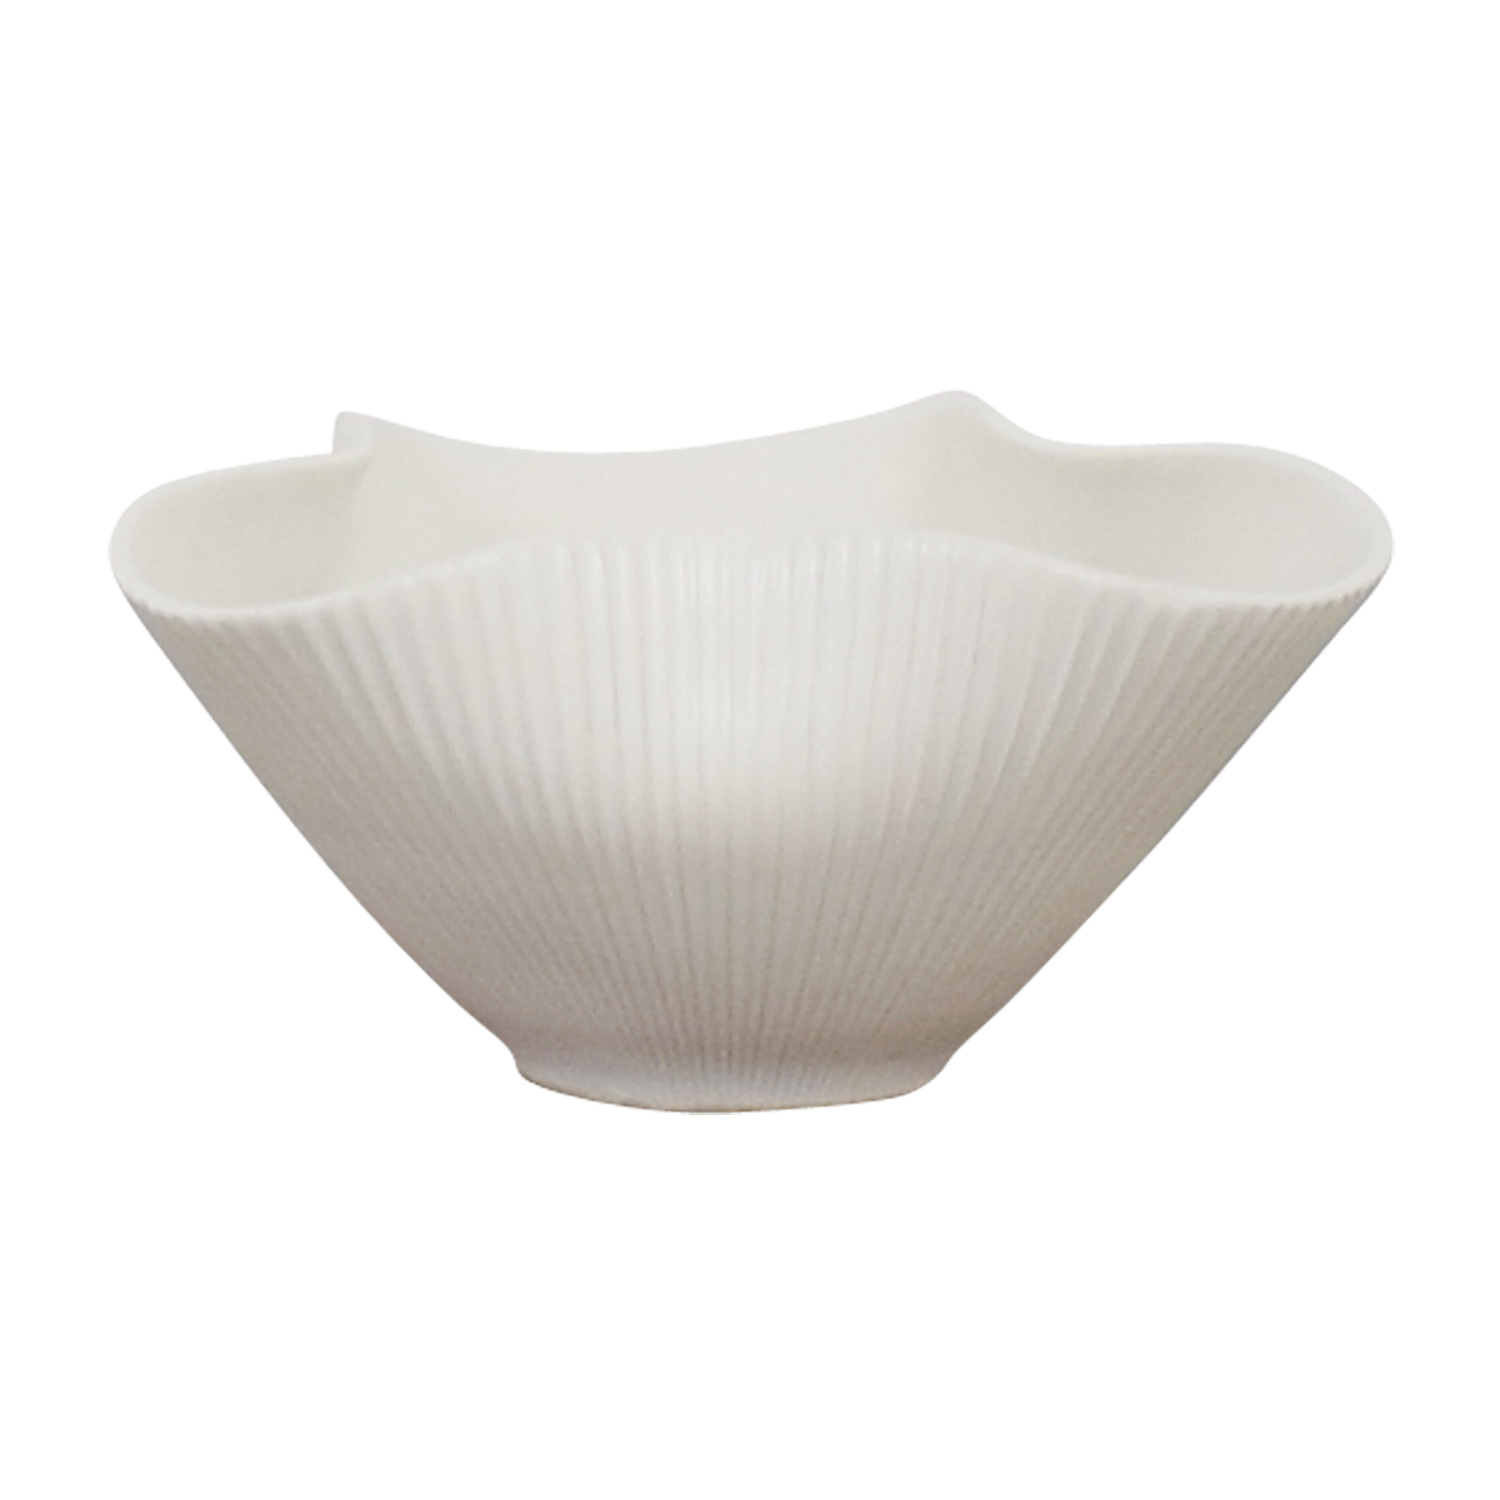 Jonathan Adler Extra Large White Punch Bowl